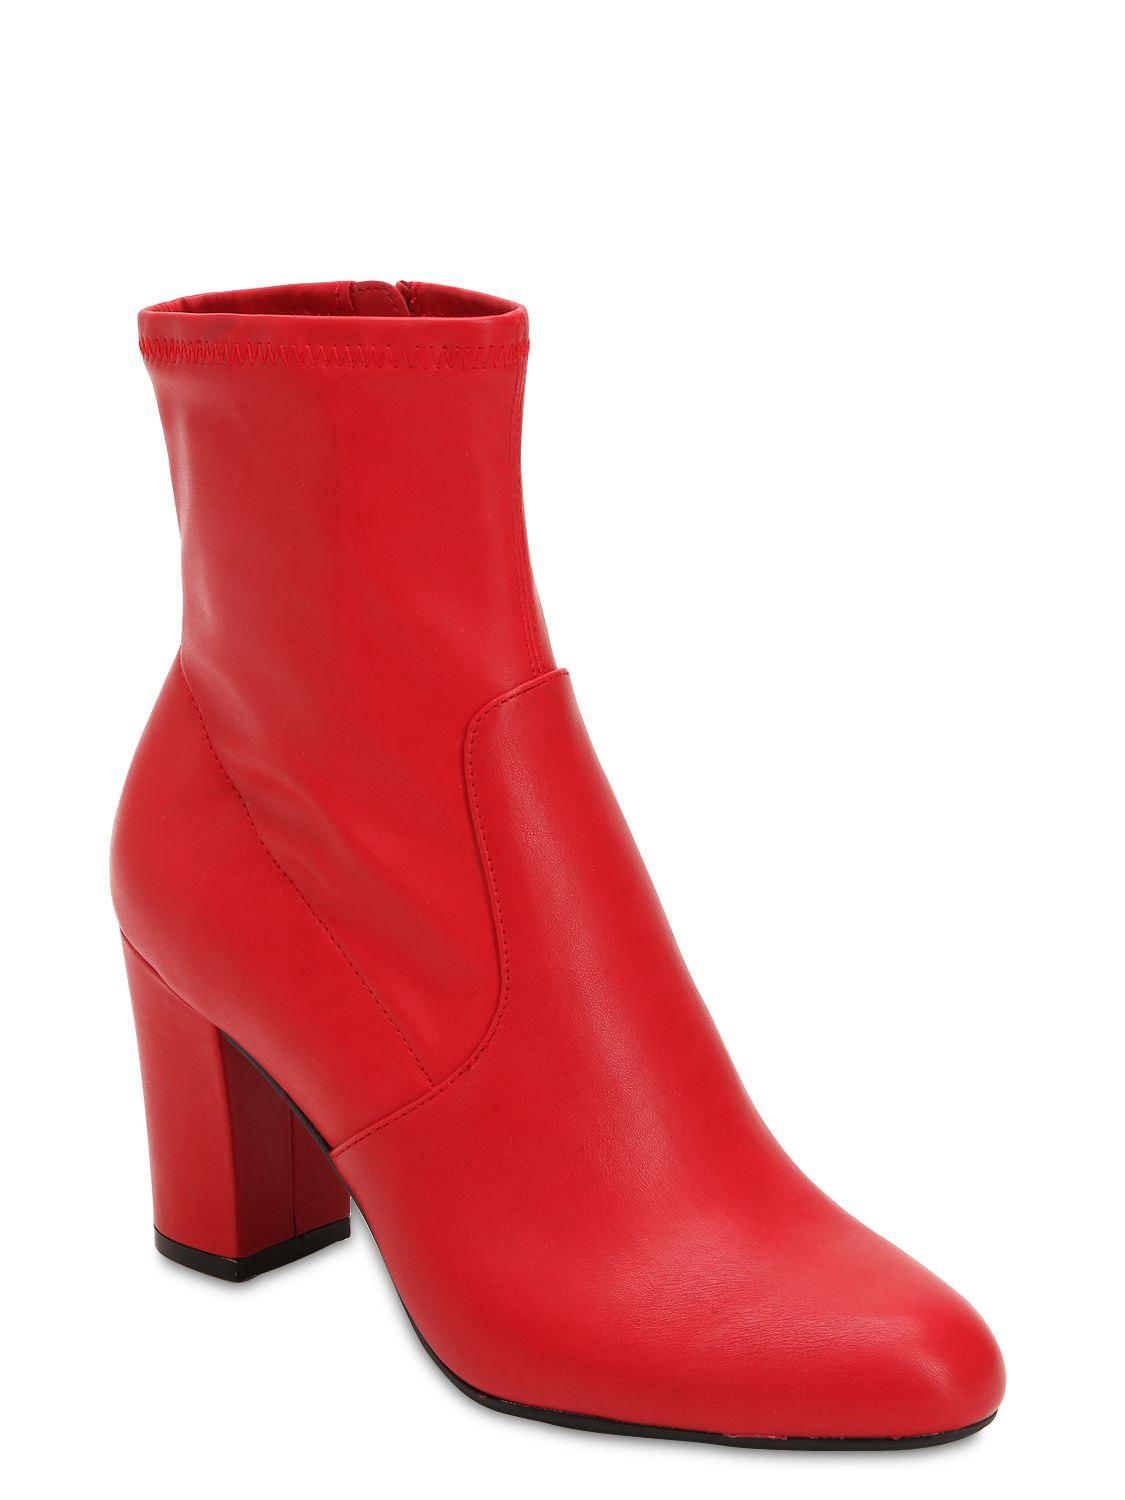 e6a960f10 Steve Madden 90mm Actual Faux Leather Boots in Red - Lyst